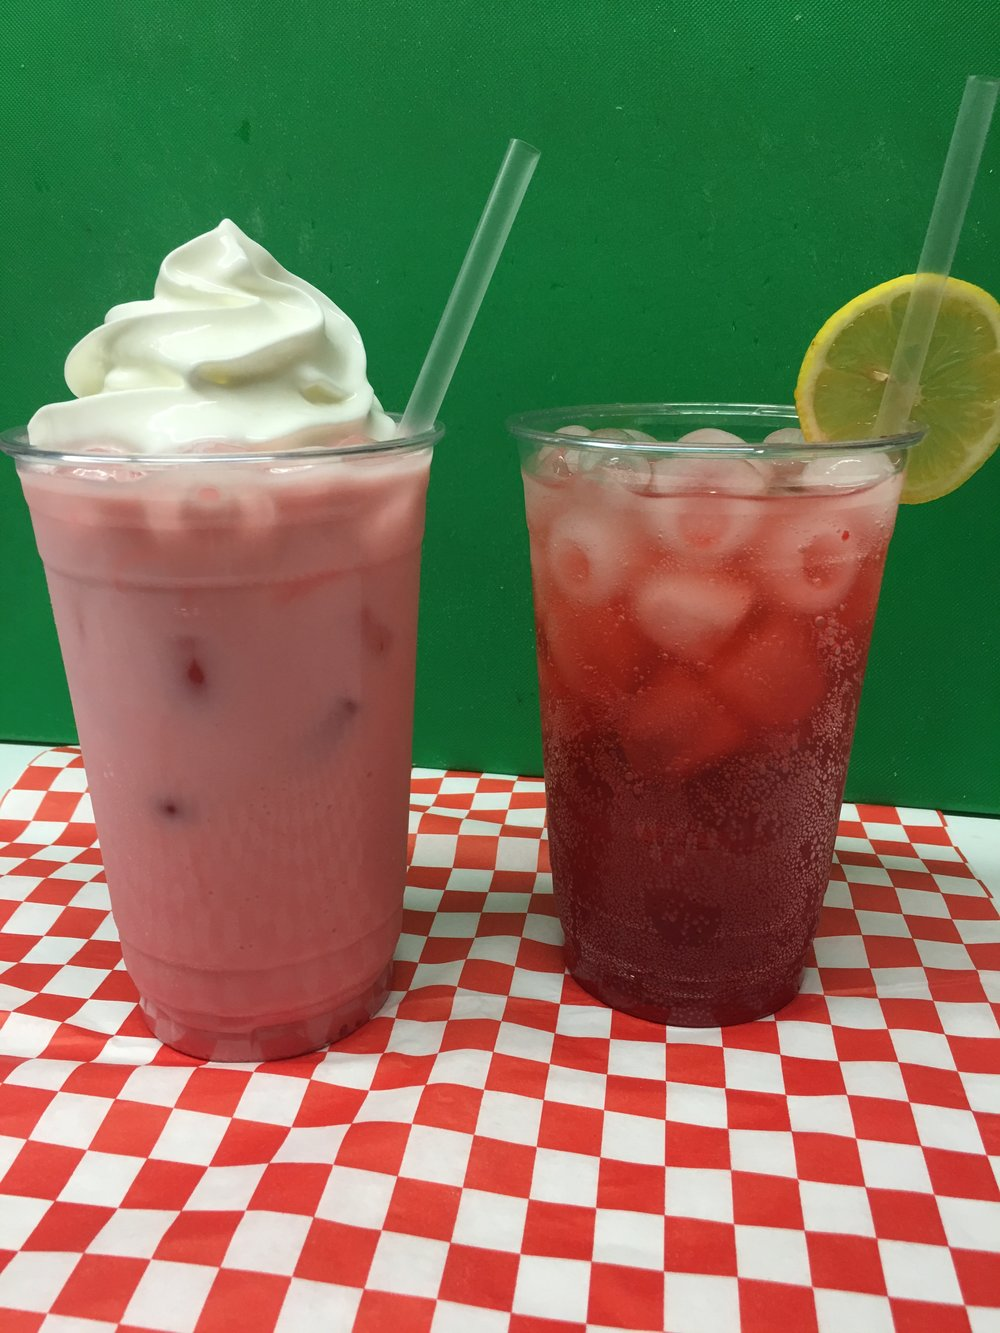 Italian Soda's&  Creamosa - Italian Soda's $3.50Bubbly flavored italian soda Peach, Raspberry, Strawberry, Kiwi.Cremosa $4Creamy whip cream topped Italian soda Peach, Raspberry.